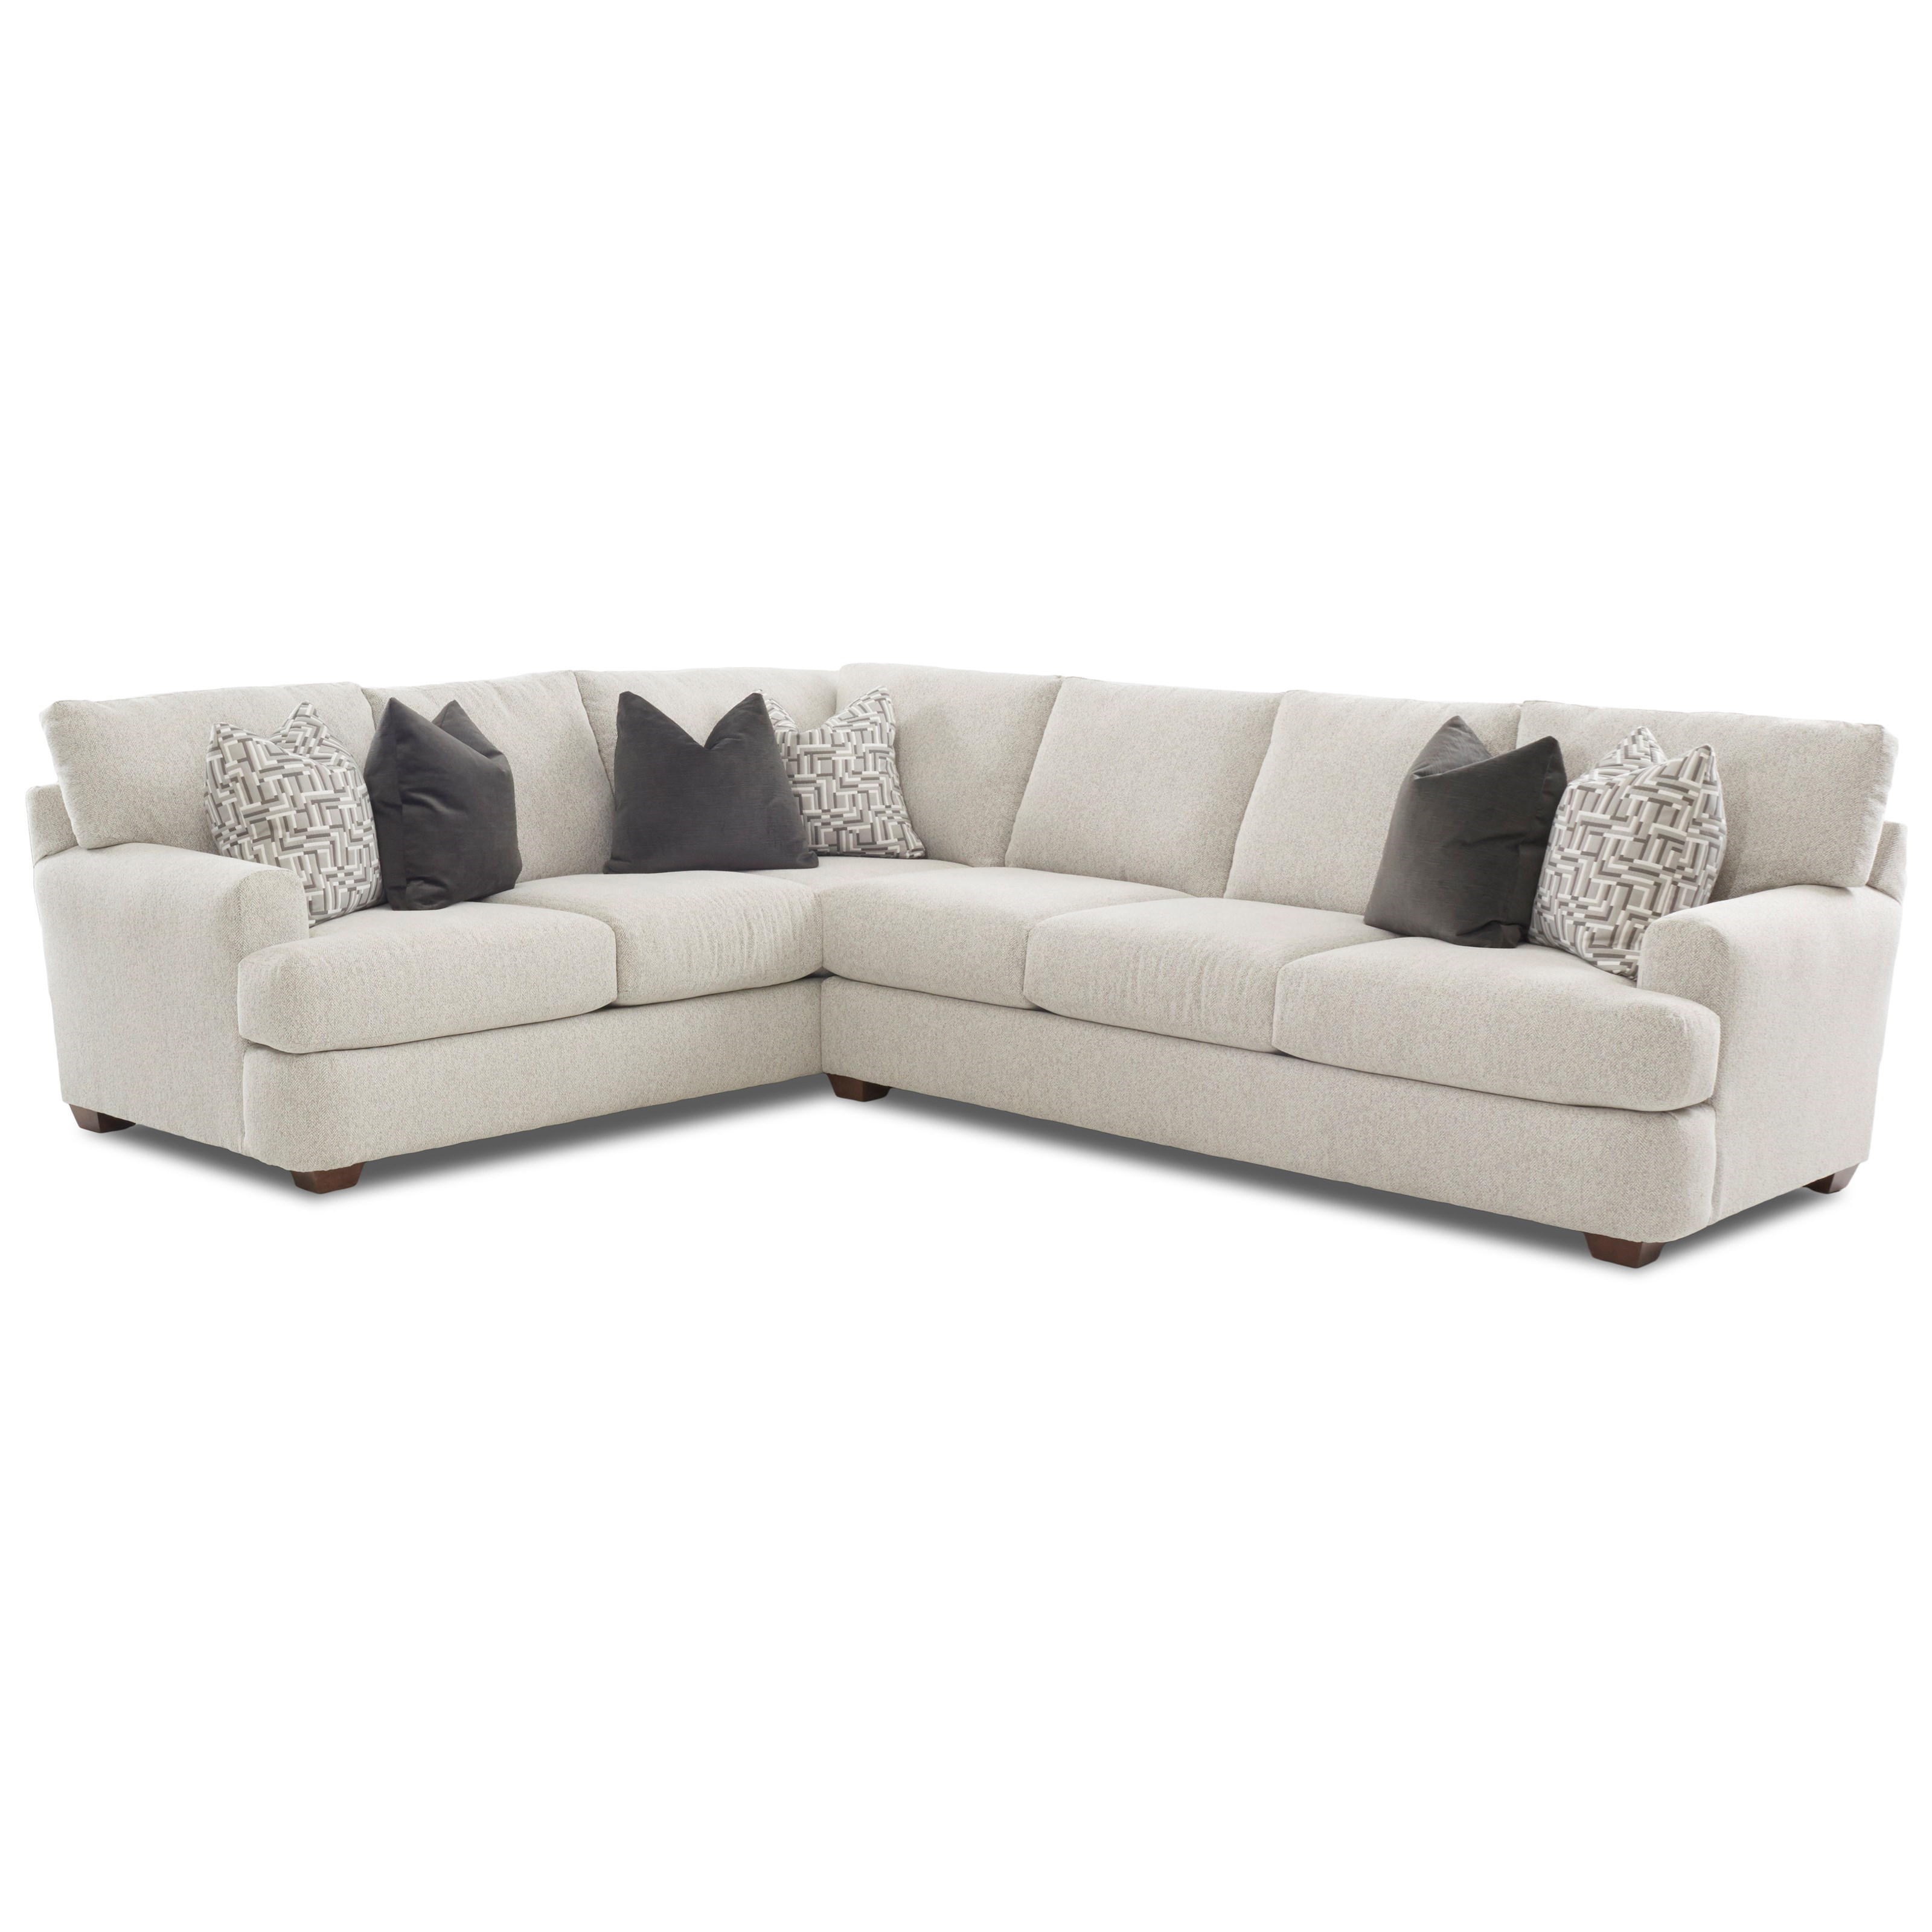 Two Piece Sectional Sofa with LAF Corner Sofa by Klaussner | Wolf ...